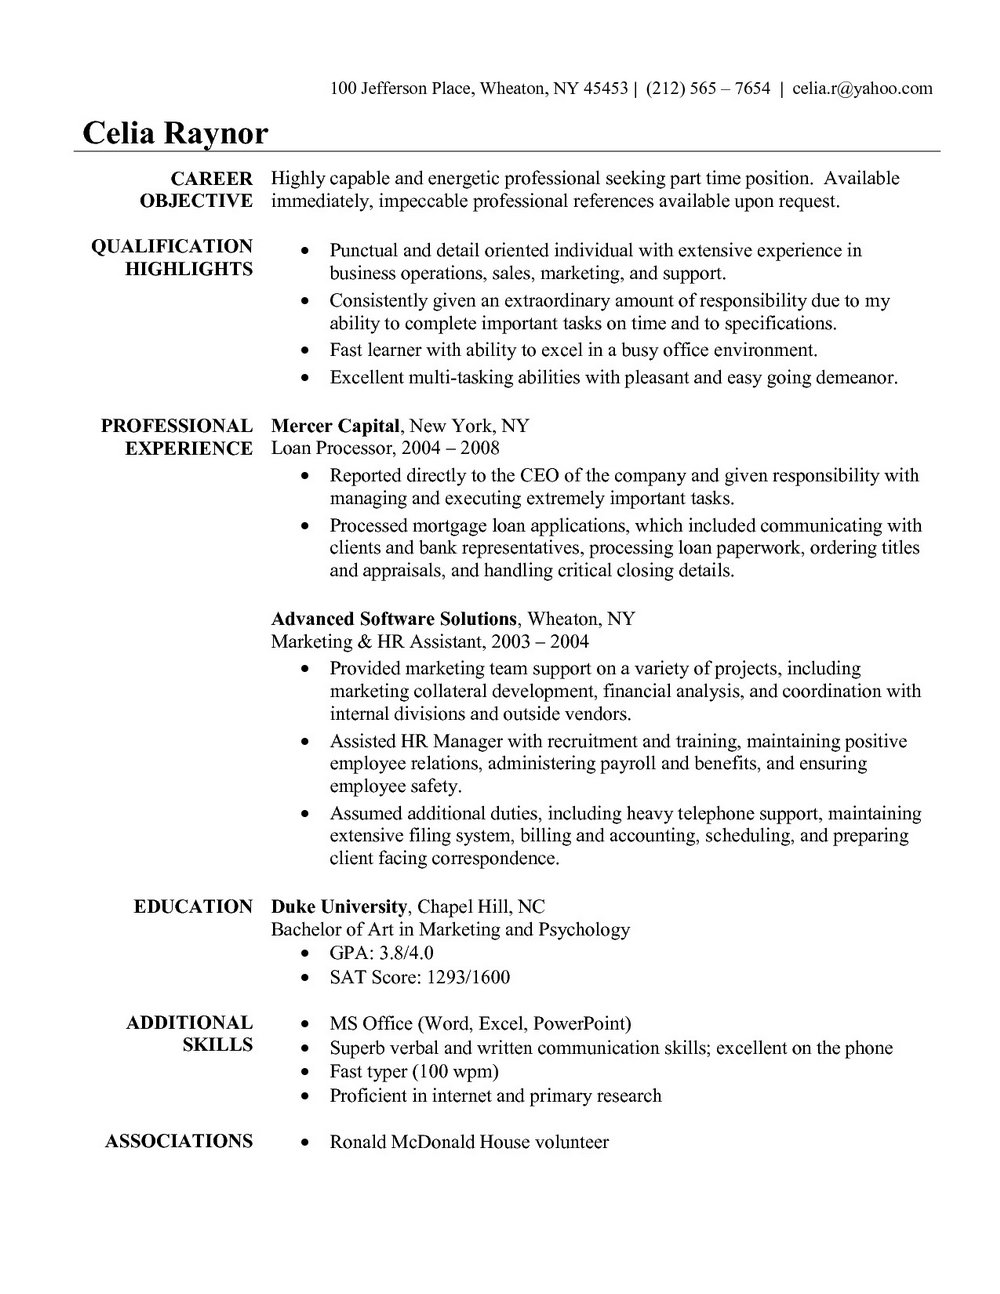 Medical Assistant Resume Examples Free